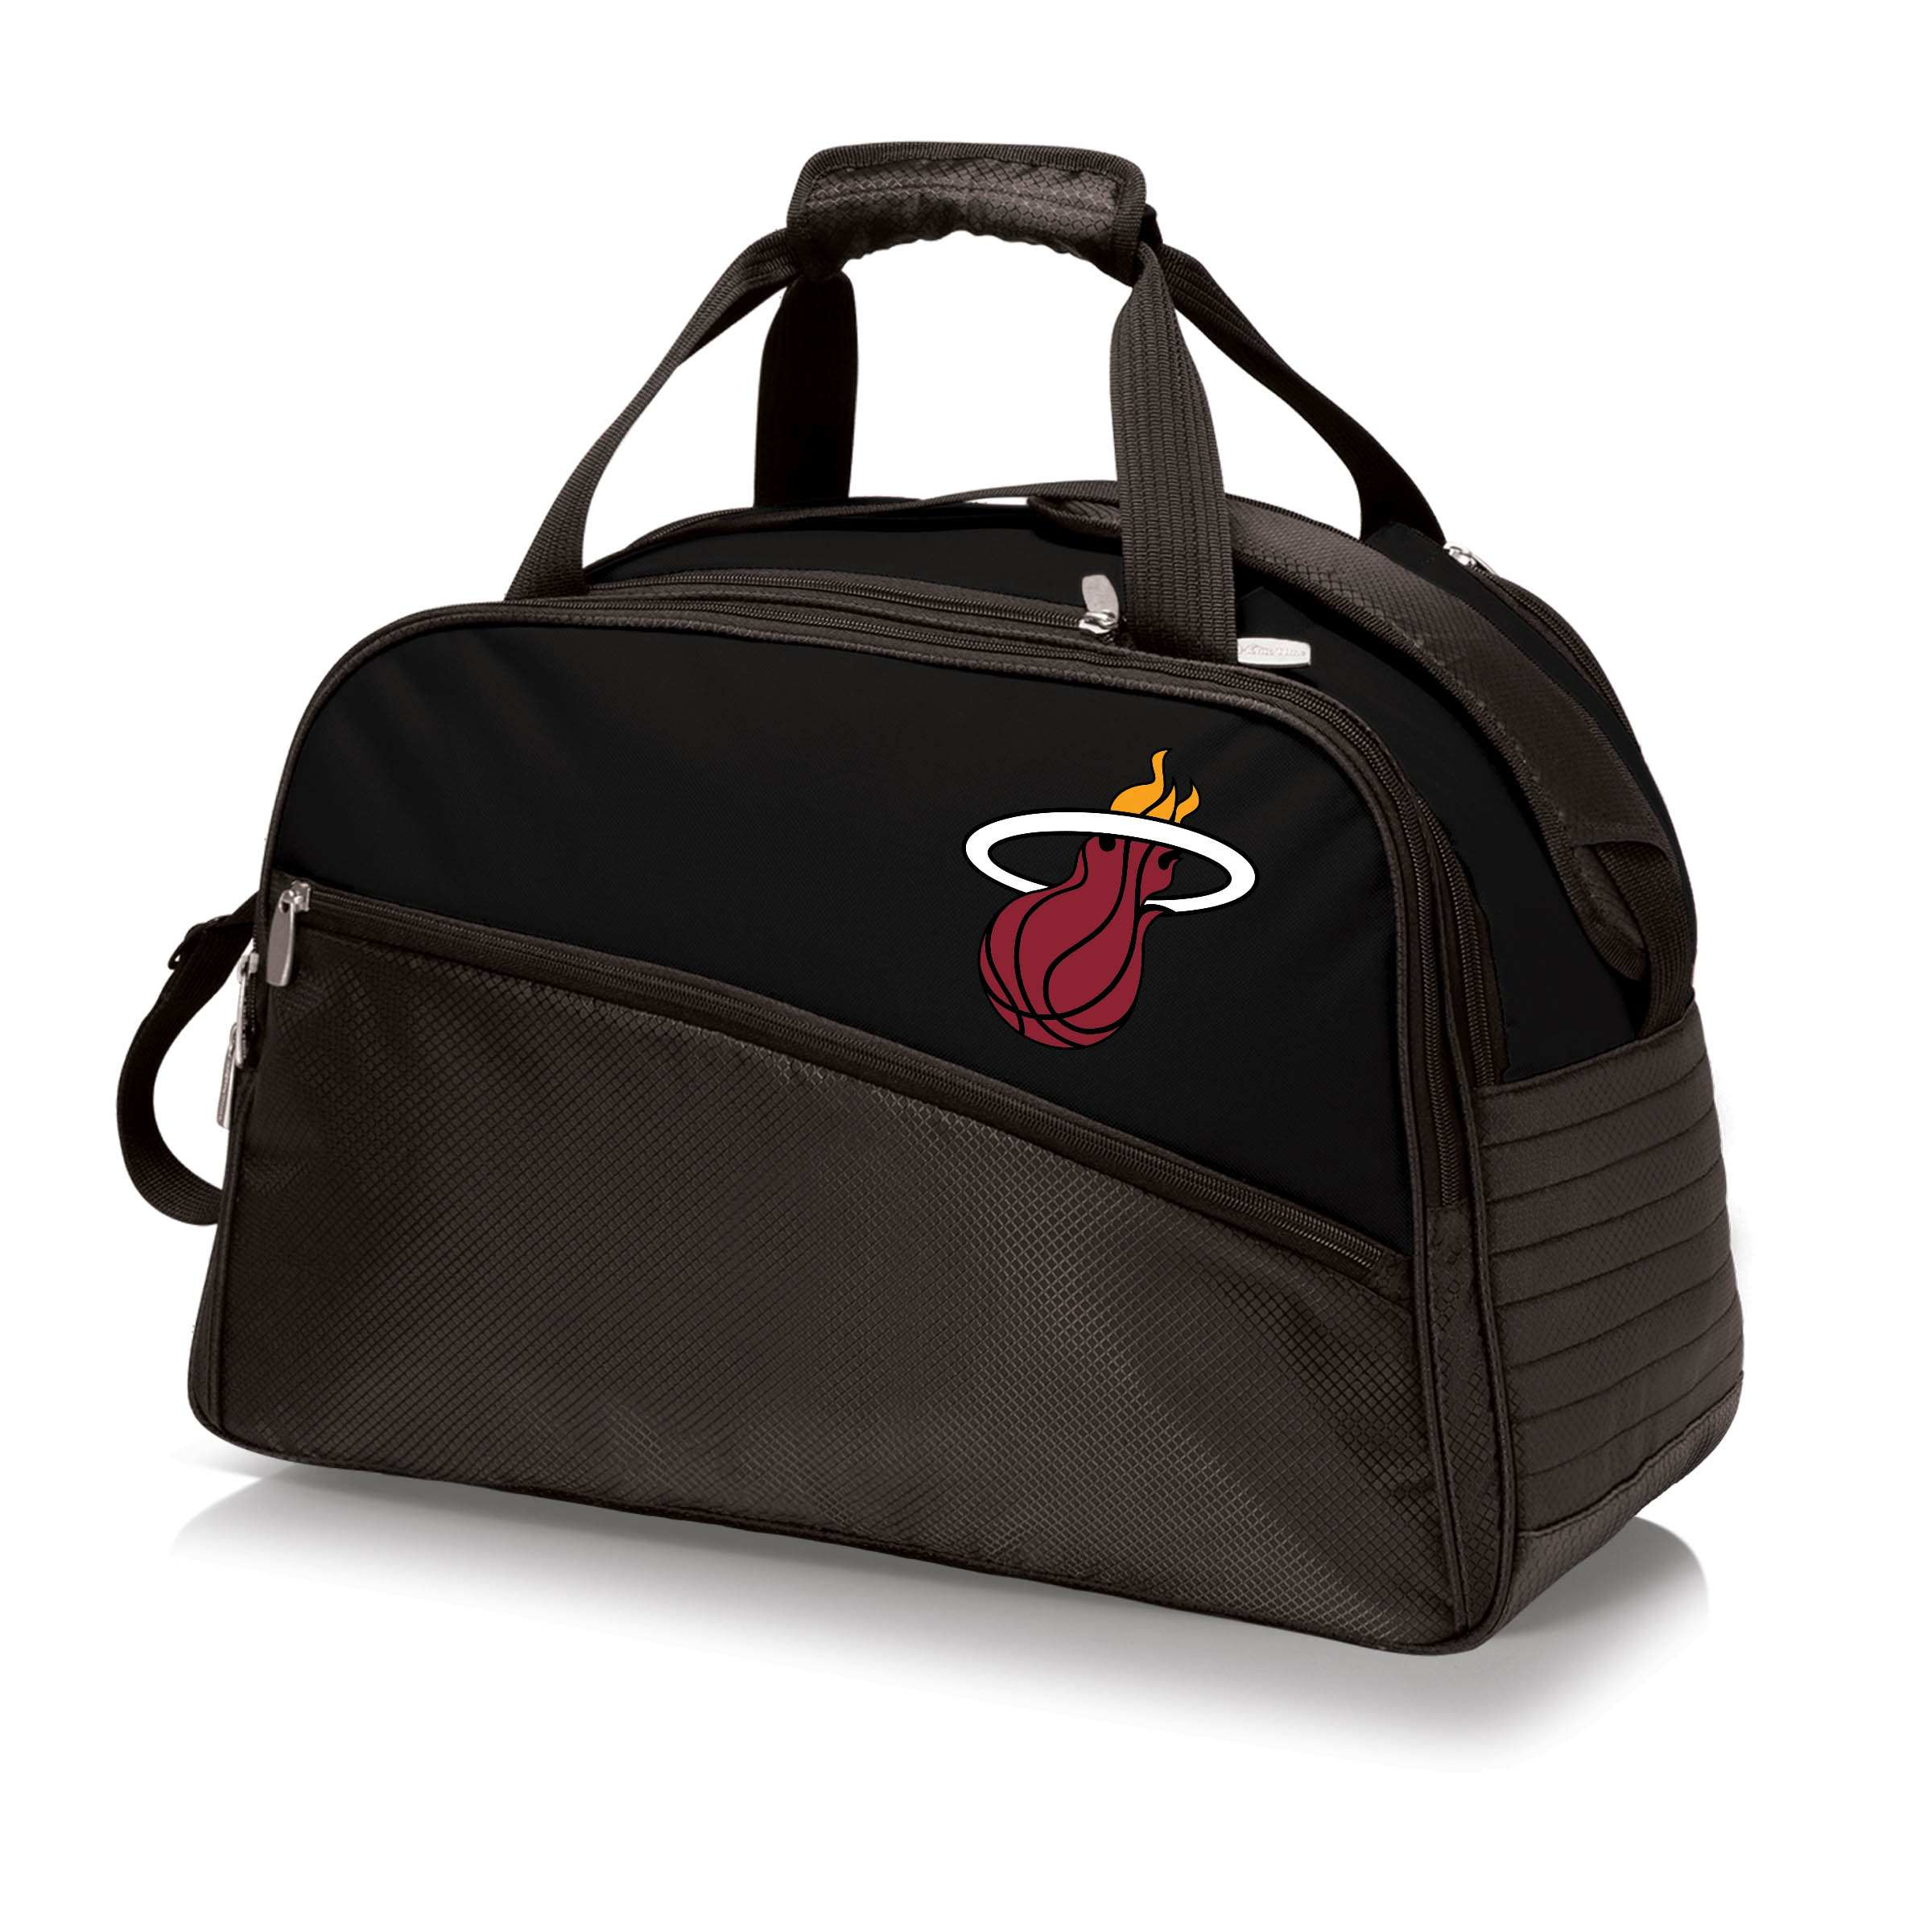 Picnic Time Nba Stratus Miami Heat